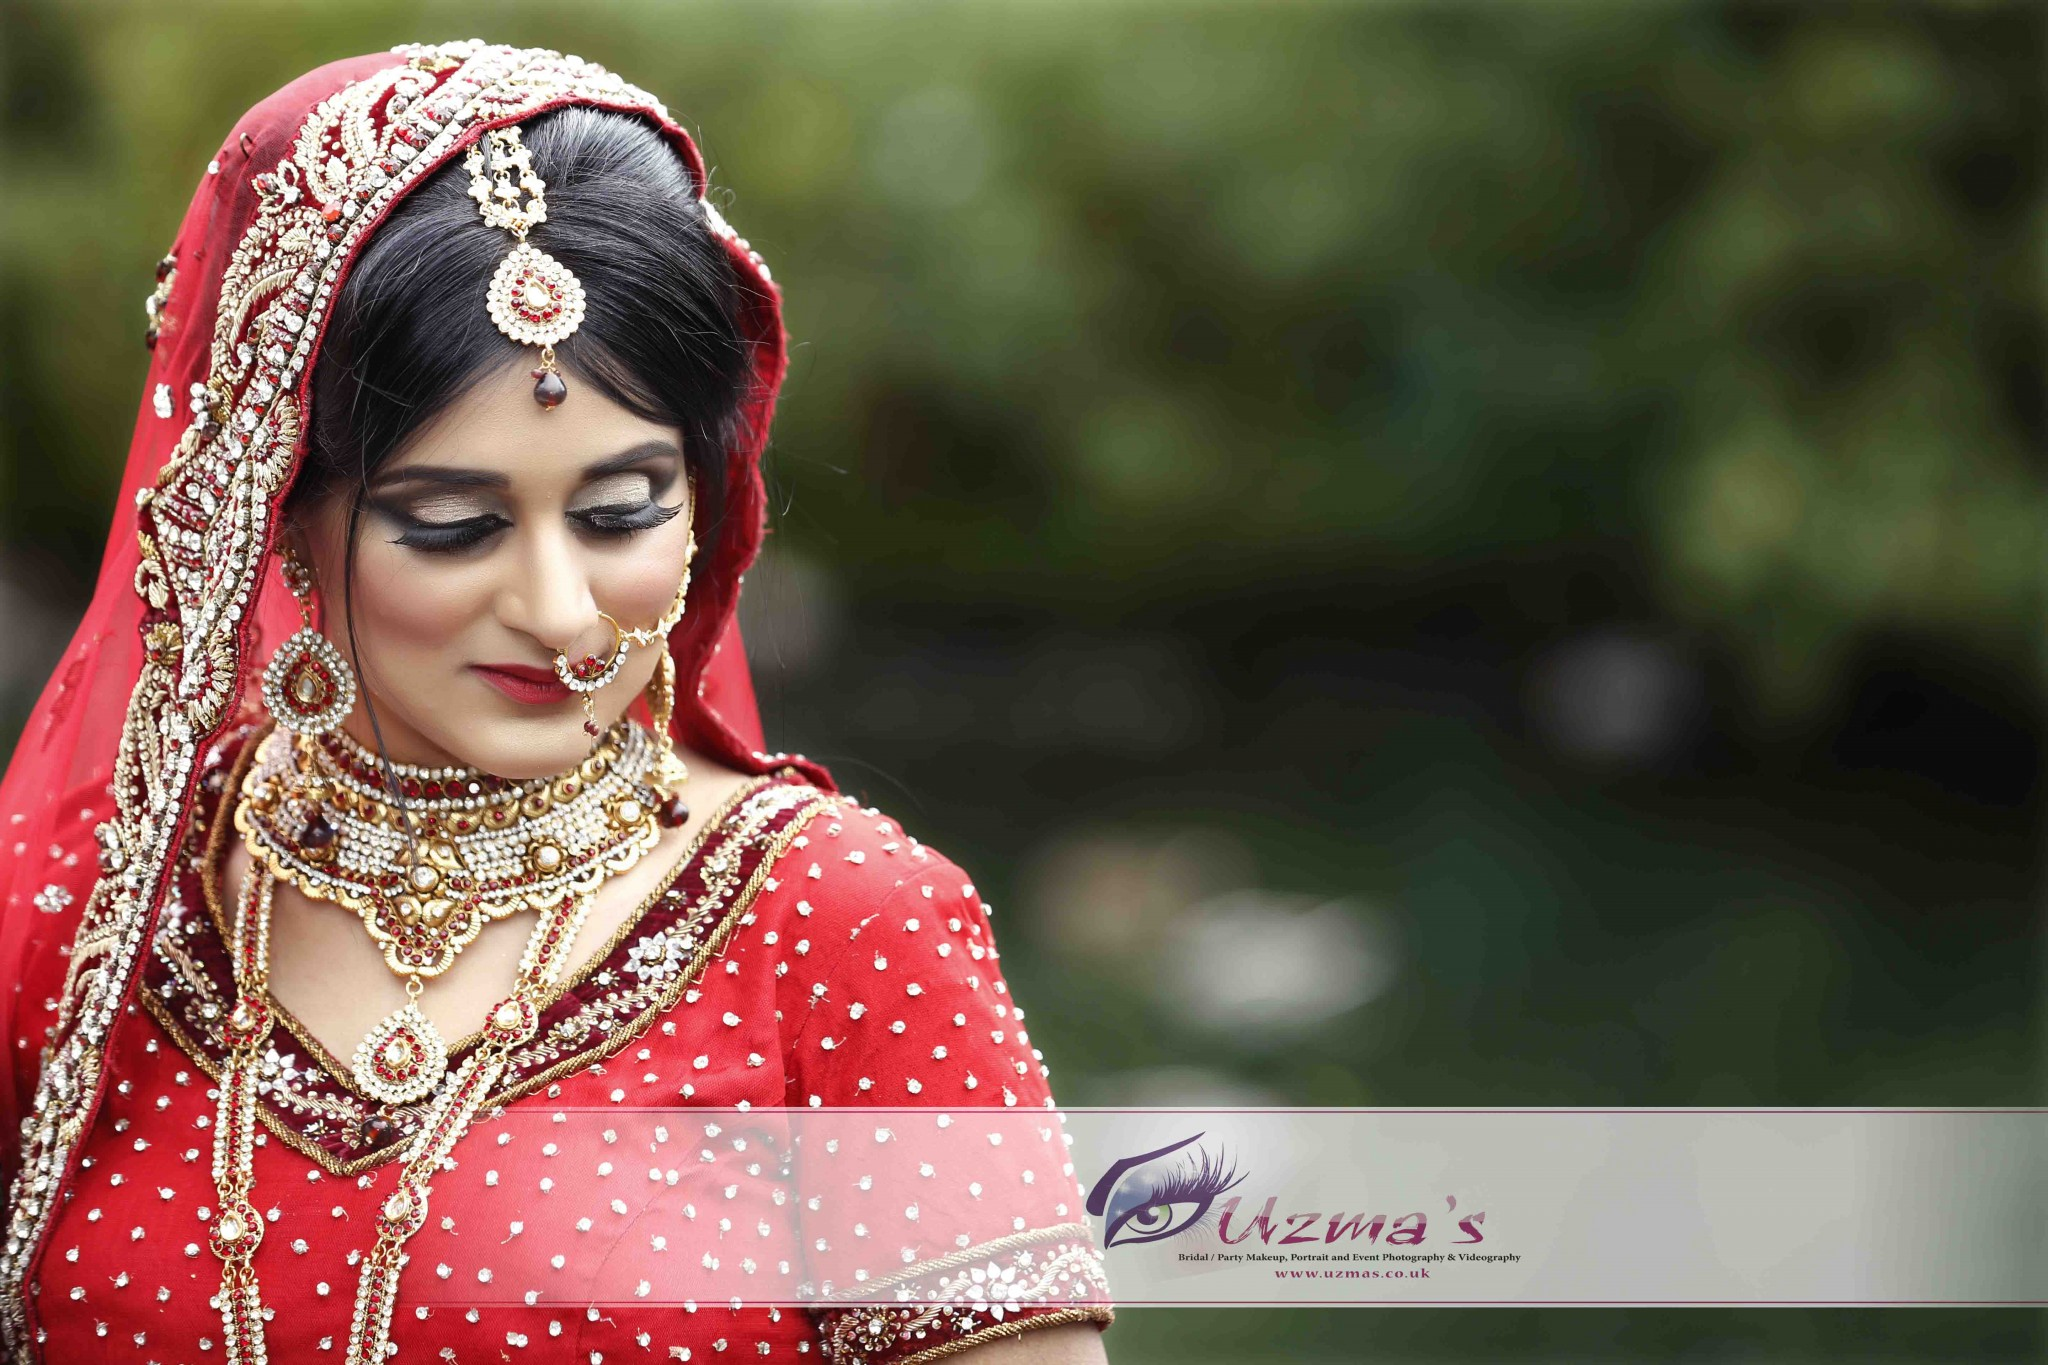 Asian Wedding Photography And Graphy Cinematic Trends Bookings For London South East